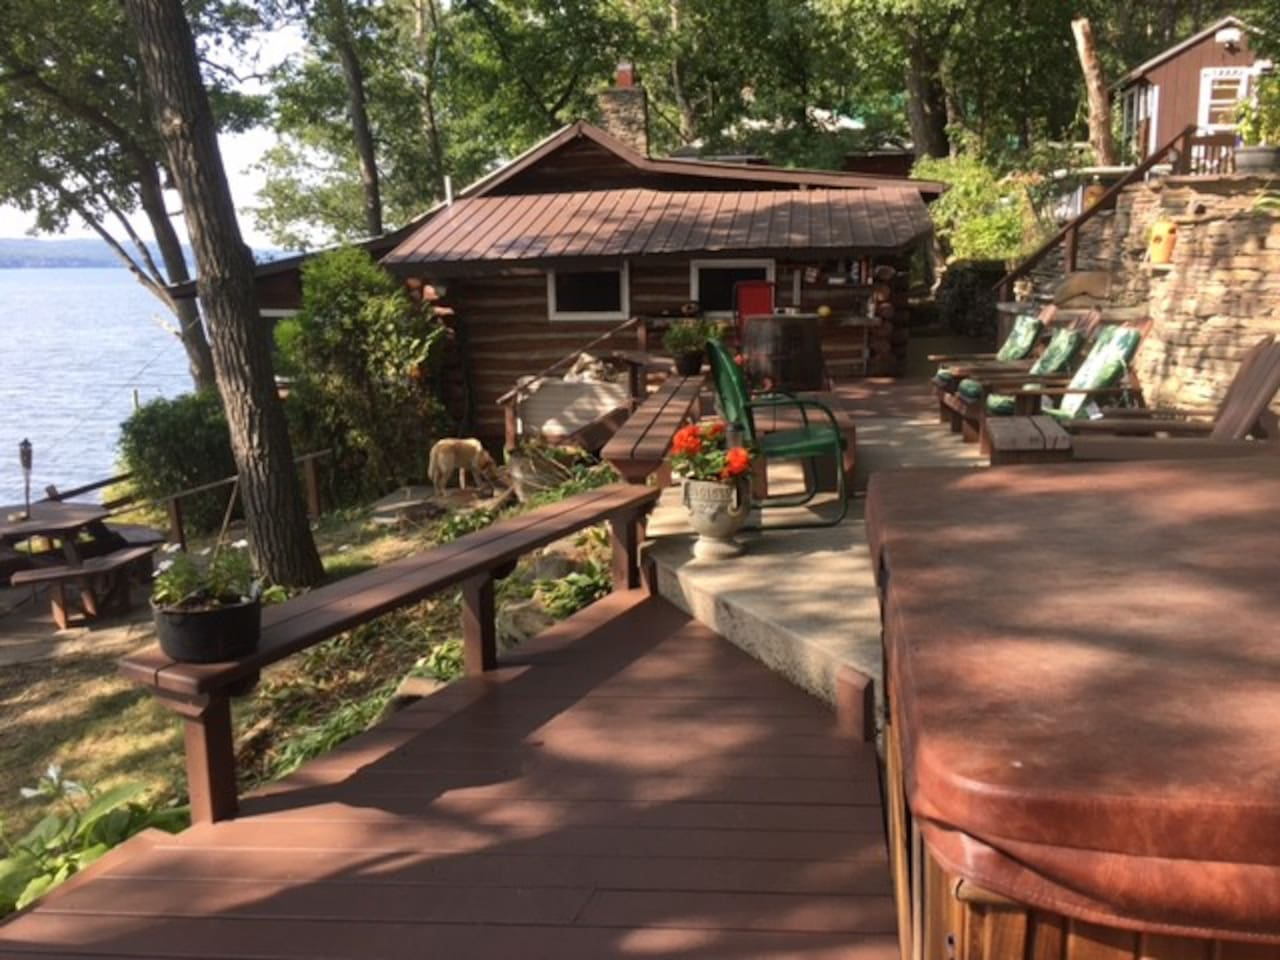 Hot tub, seating area and main cabin.